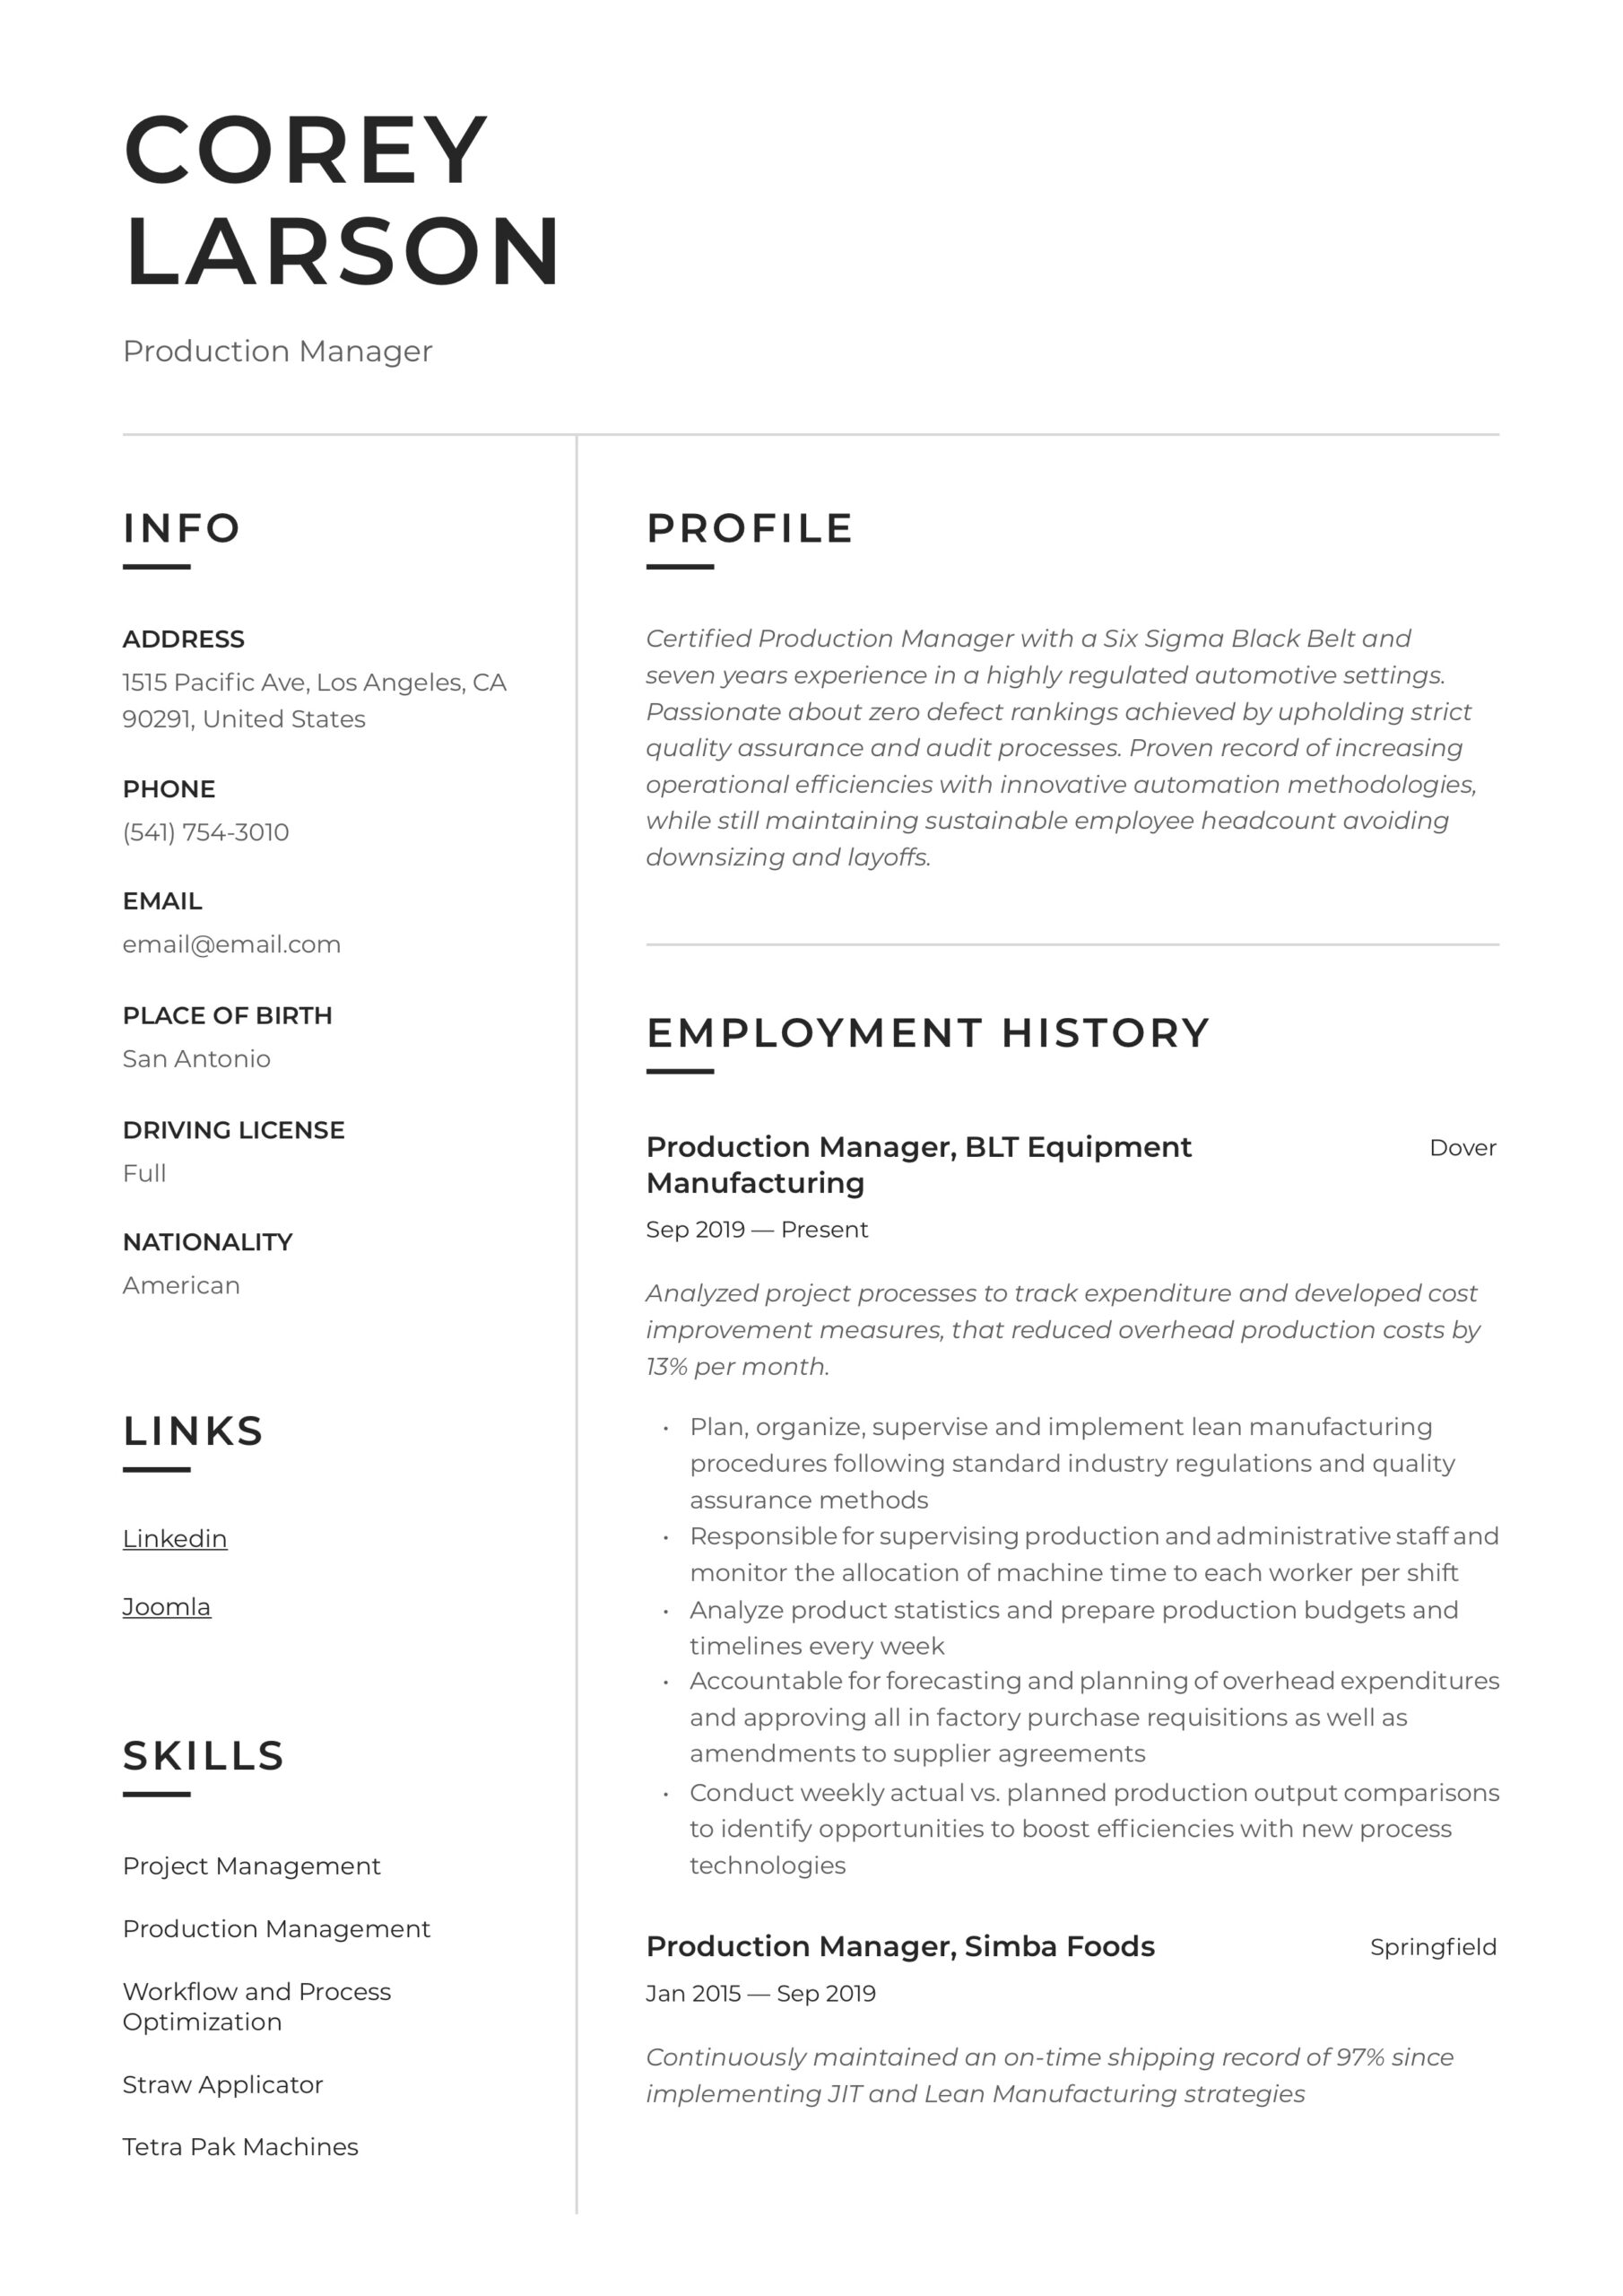 production manager resume writing guide templates control best software engineer ksu Resume Production Control Manager Resume